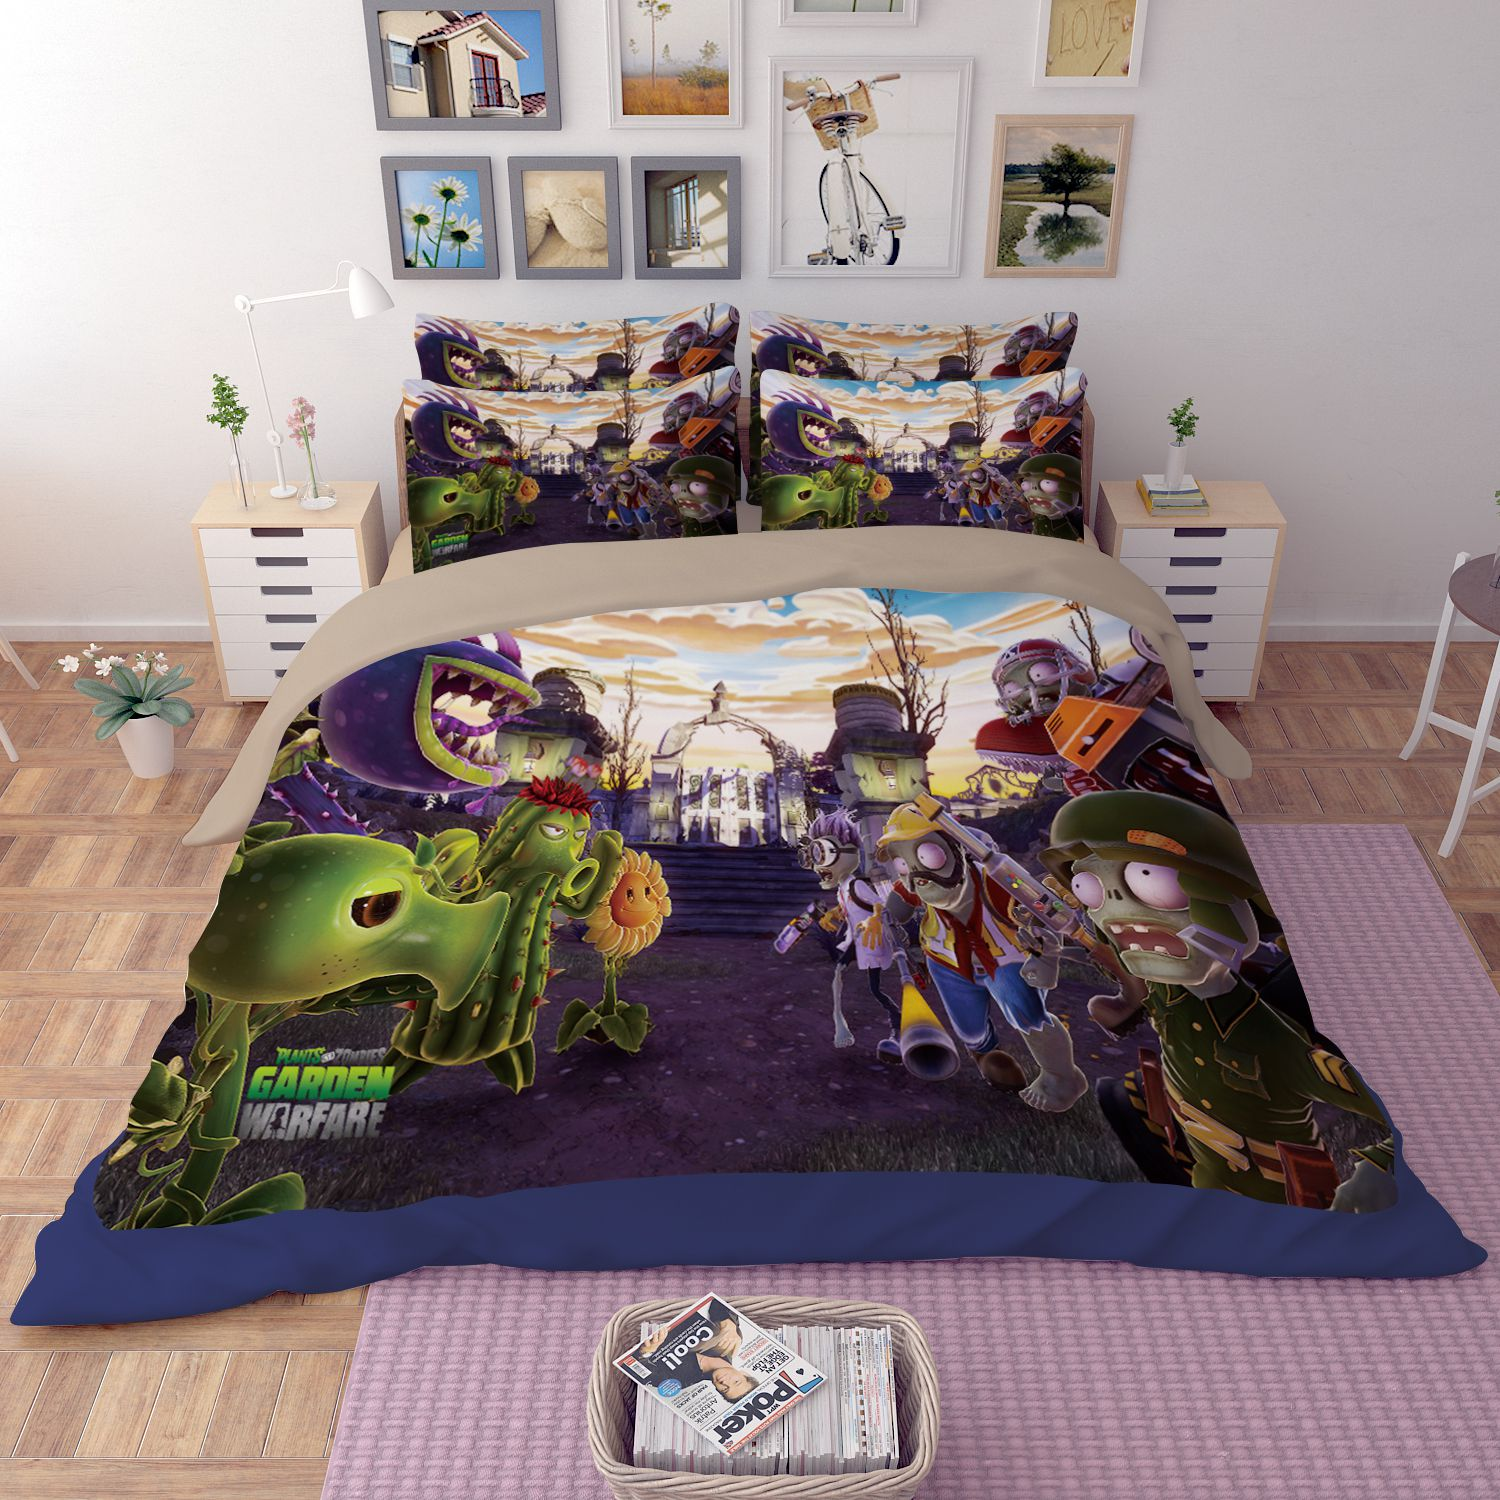 Plant Vs Zombie Garden Warfare Bedding Set Ebeddingsets